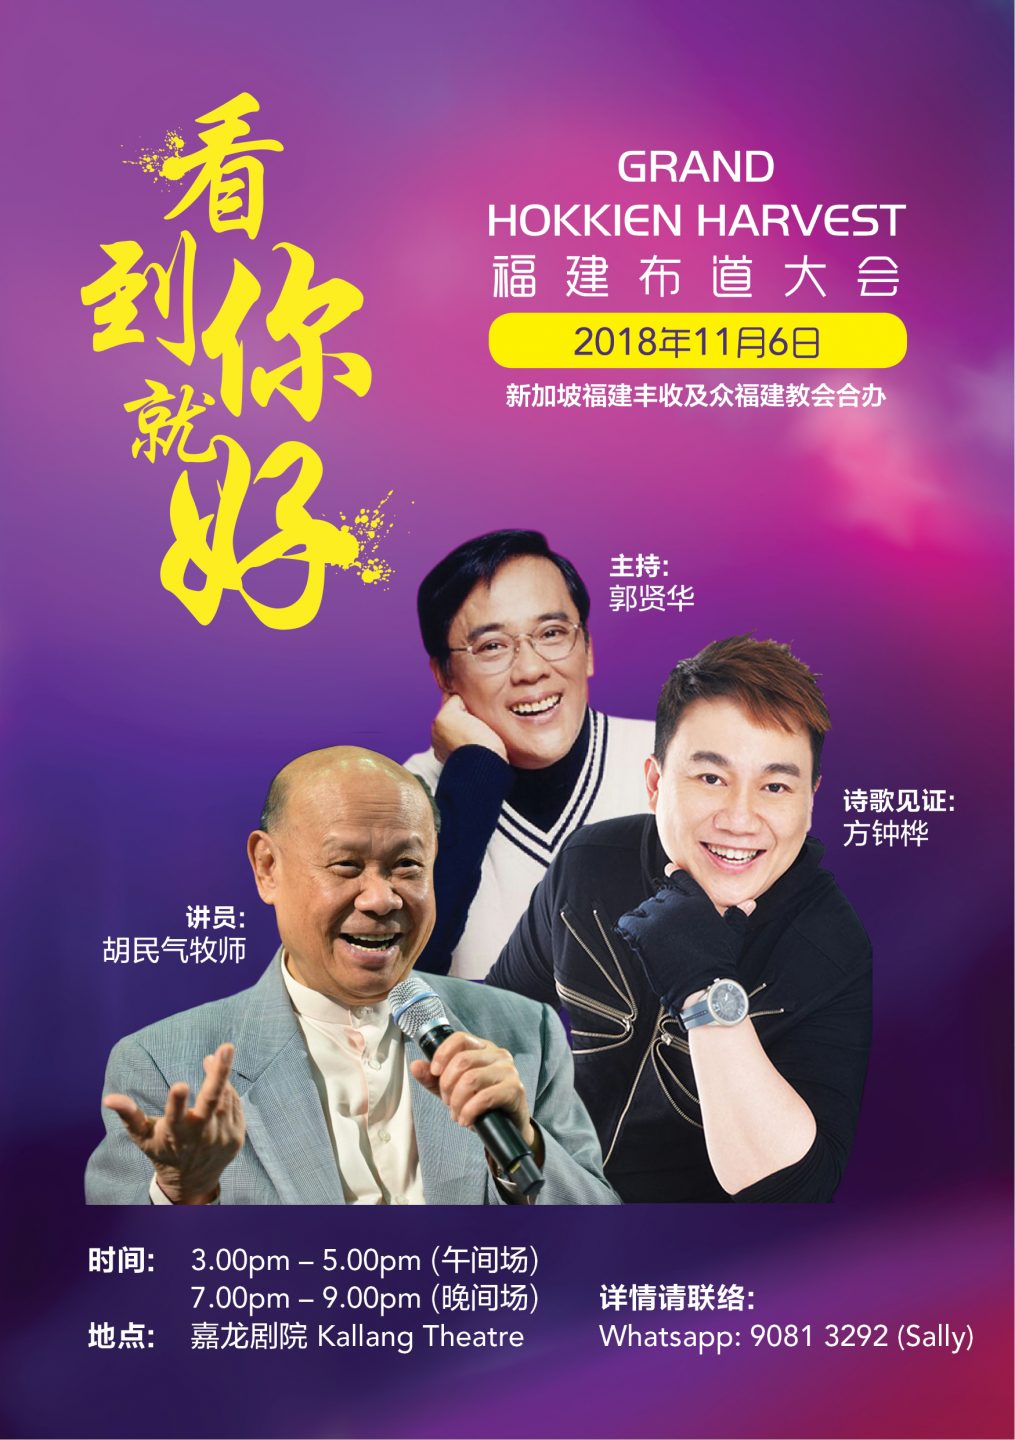 The Grand Hokkien Harvest 2018 will be held on November 6, 2018, at the Kallang Theatre.